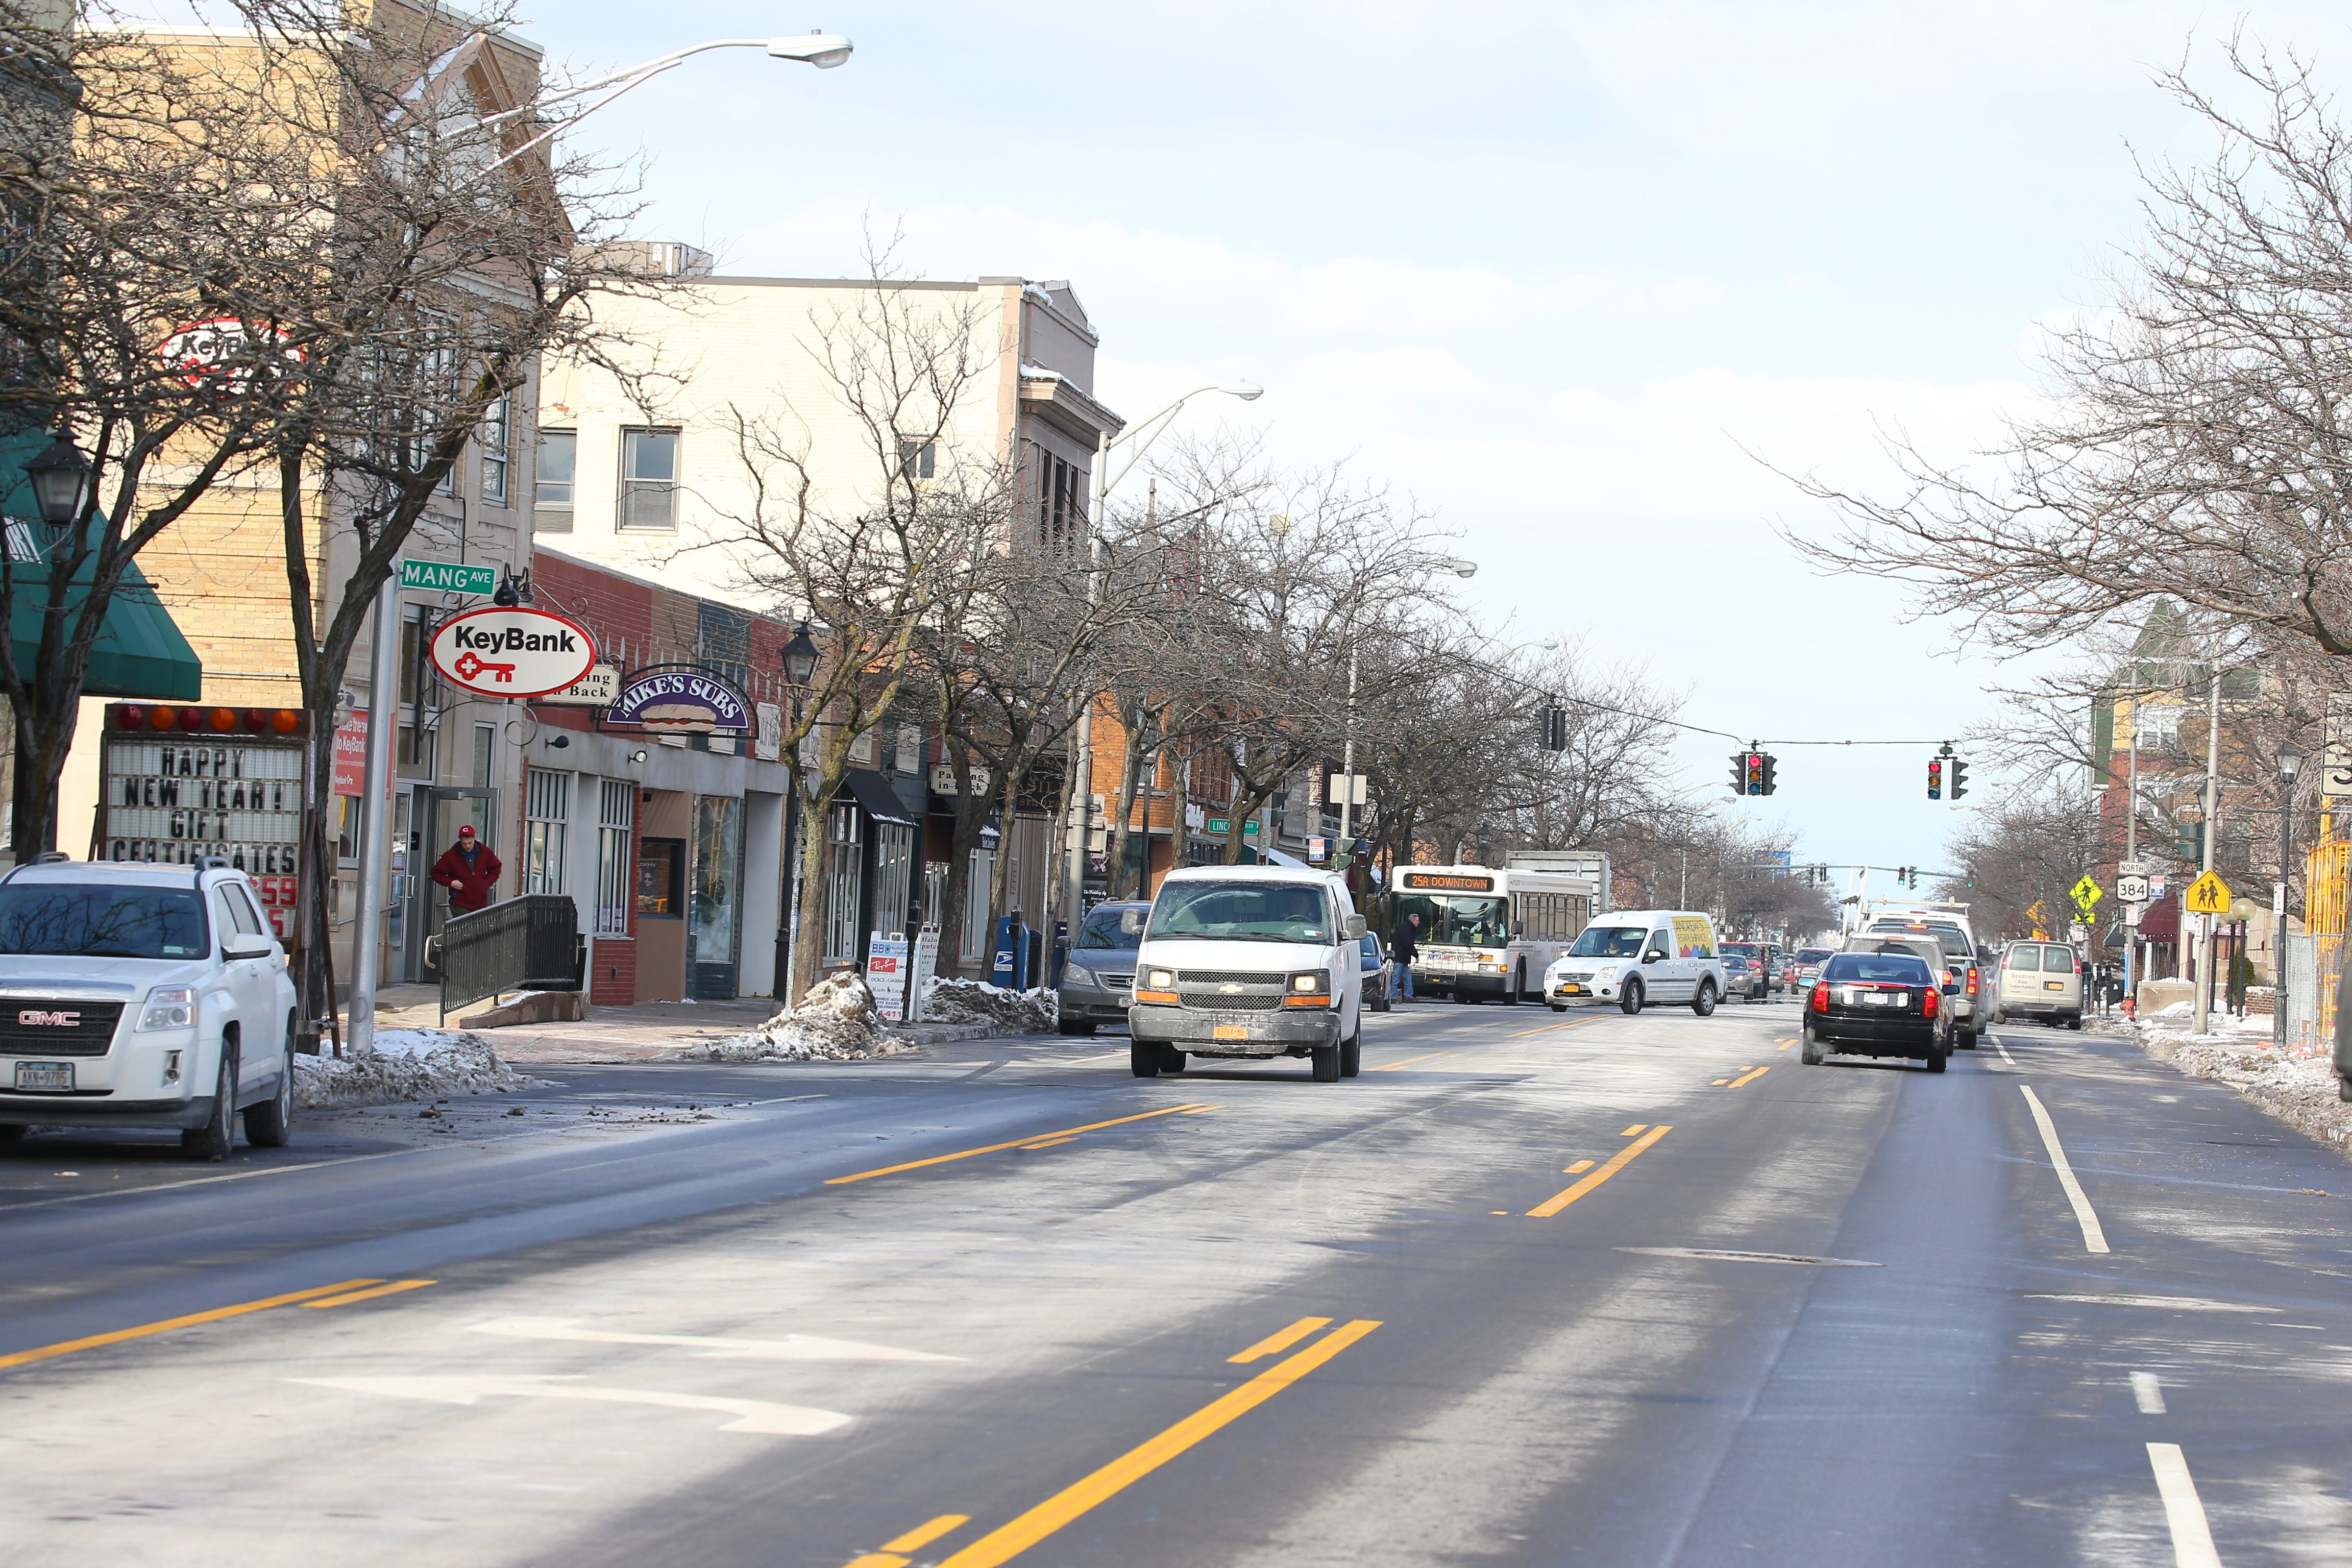 Traffic accidents on Delaware Avenue between Kenmore and Pullman avenues in the Village of Kenmore have risen sharply since the number of lanes was reduced from four to two. In the village as a whole, there were 252 accidents last year, more than a quarter of them on Delaware.